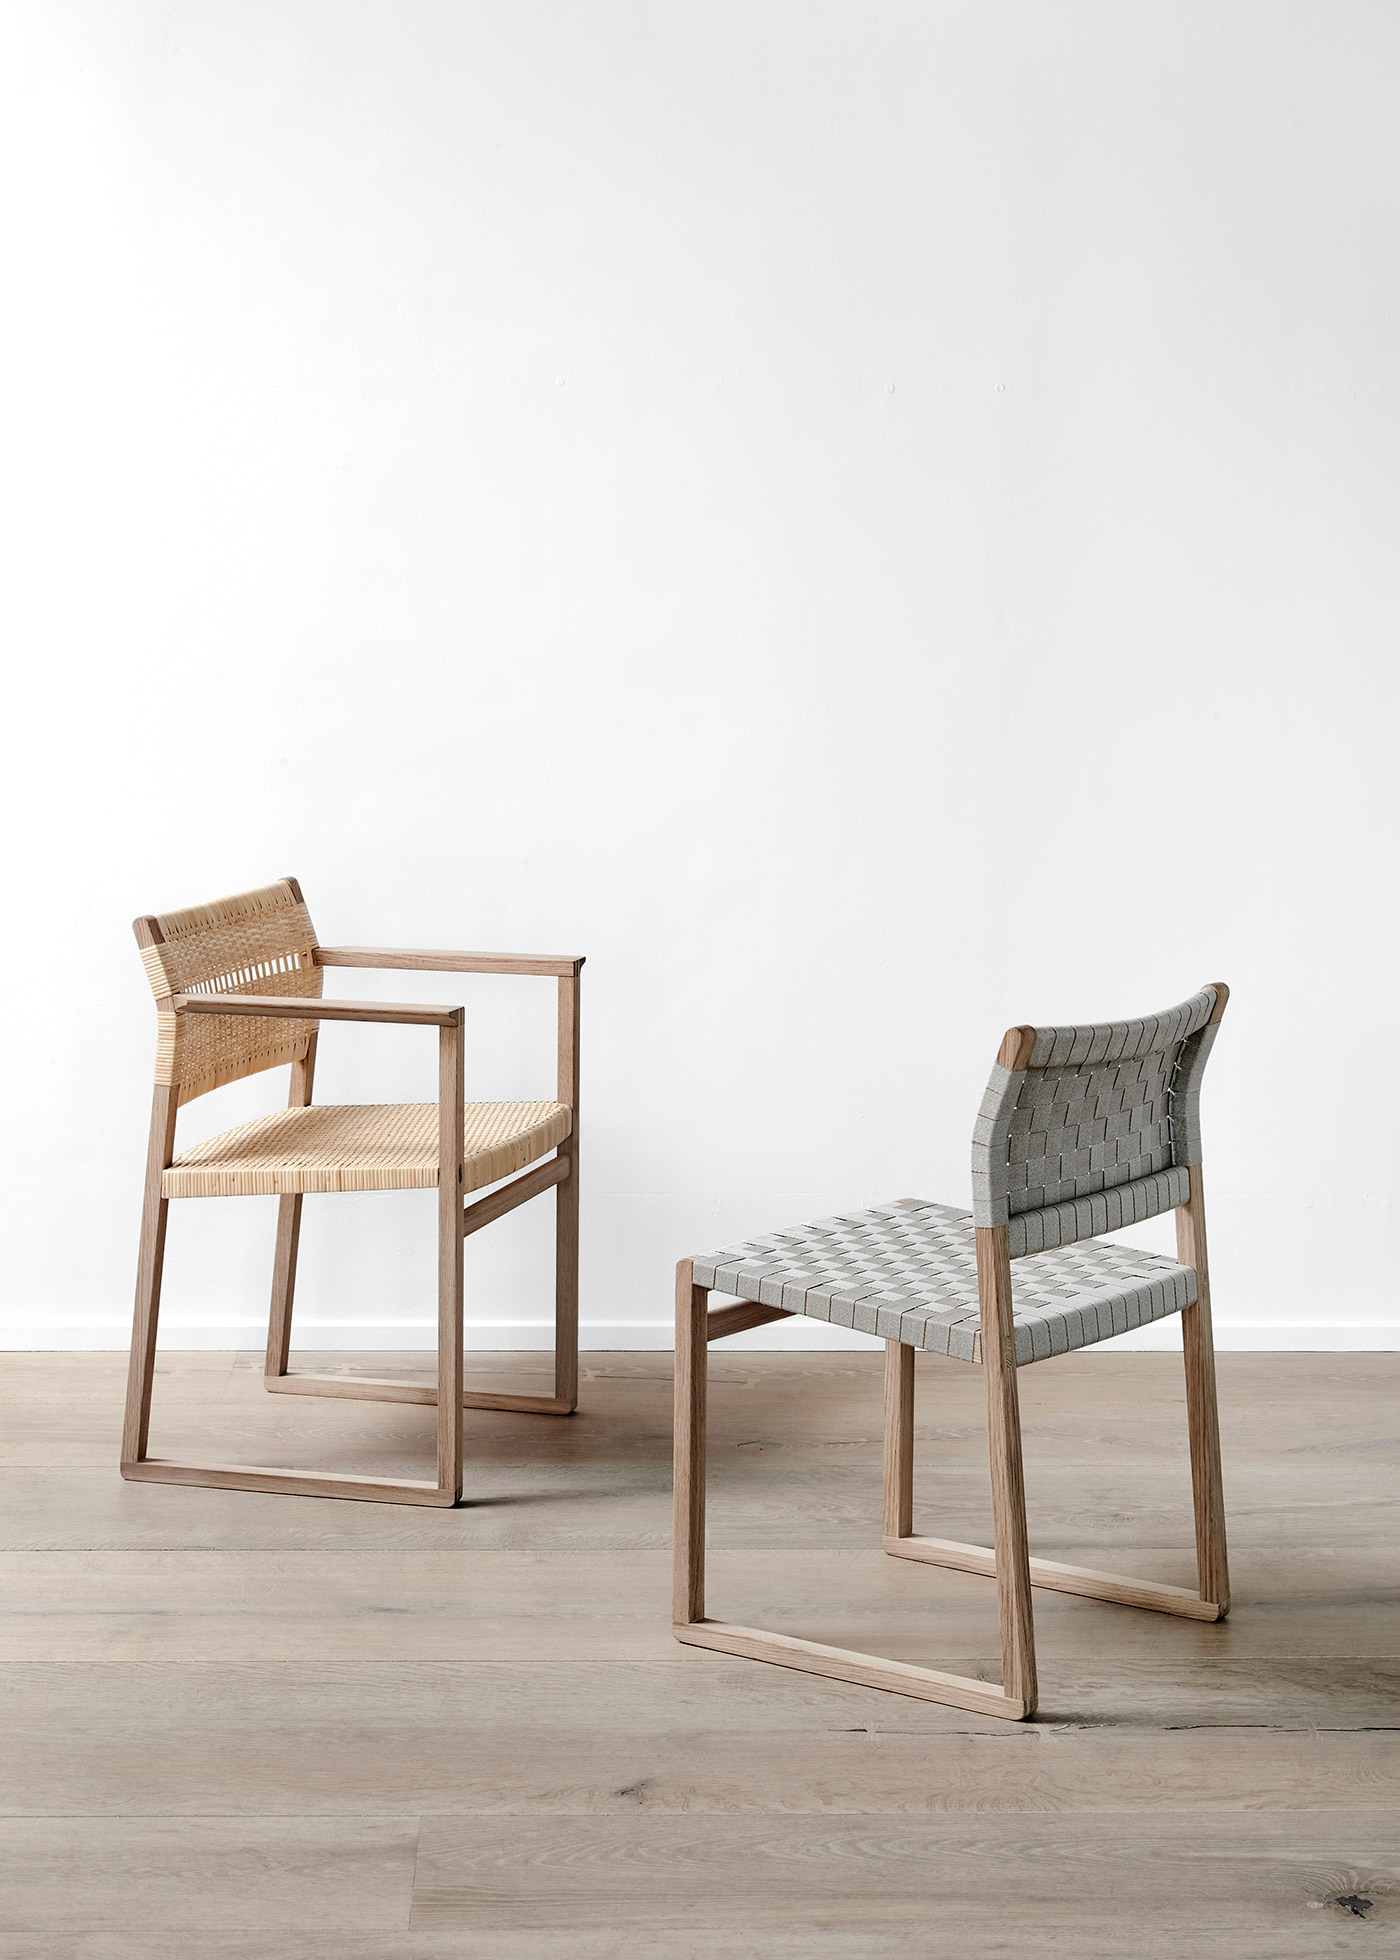 BM61 and BM62 chairs by Fredericia against white wall